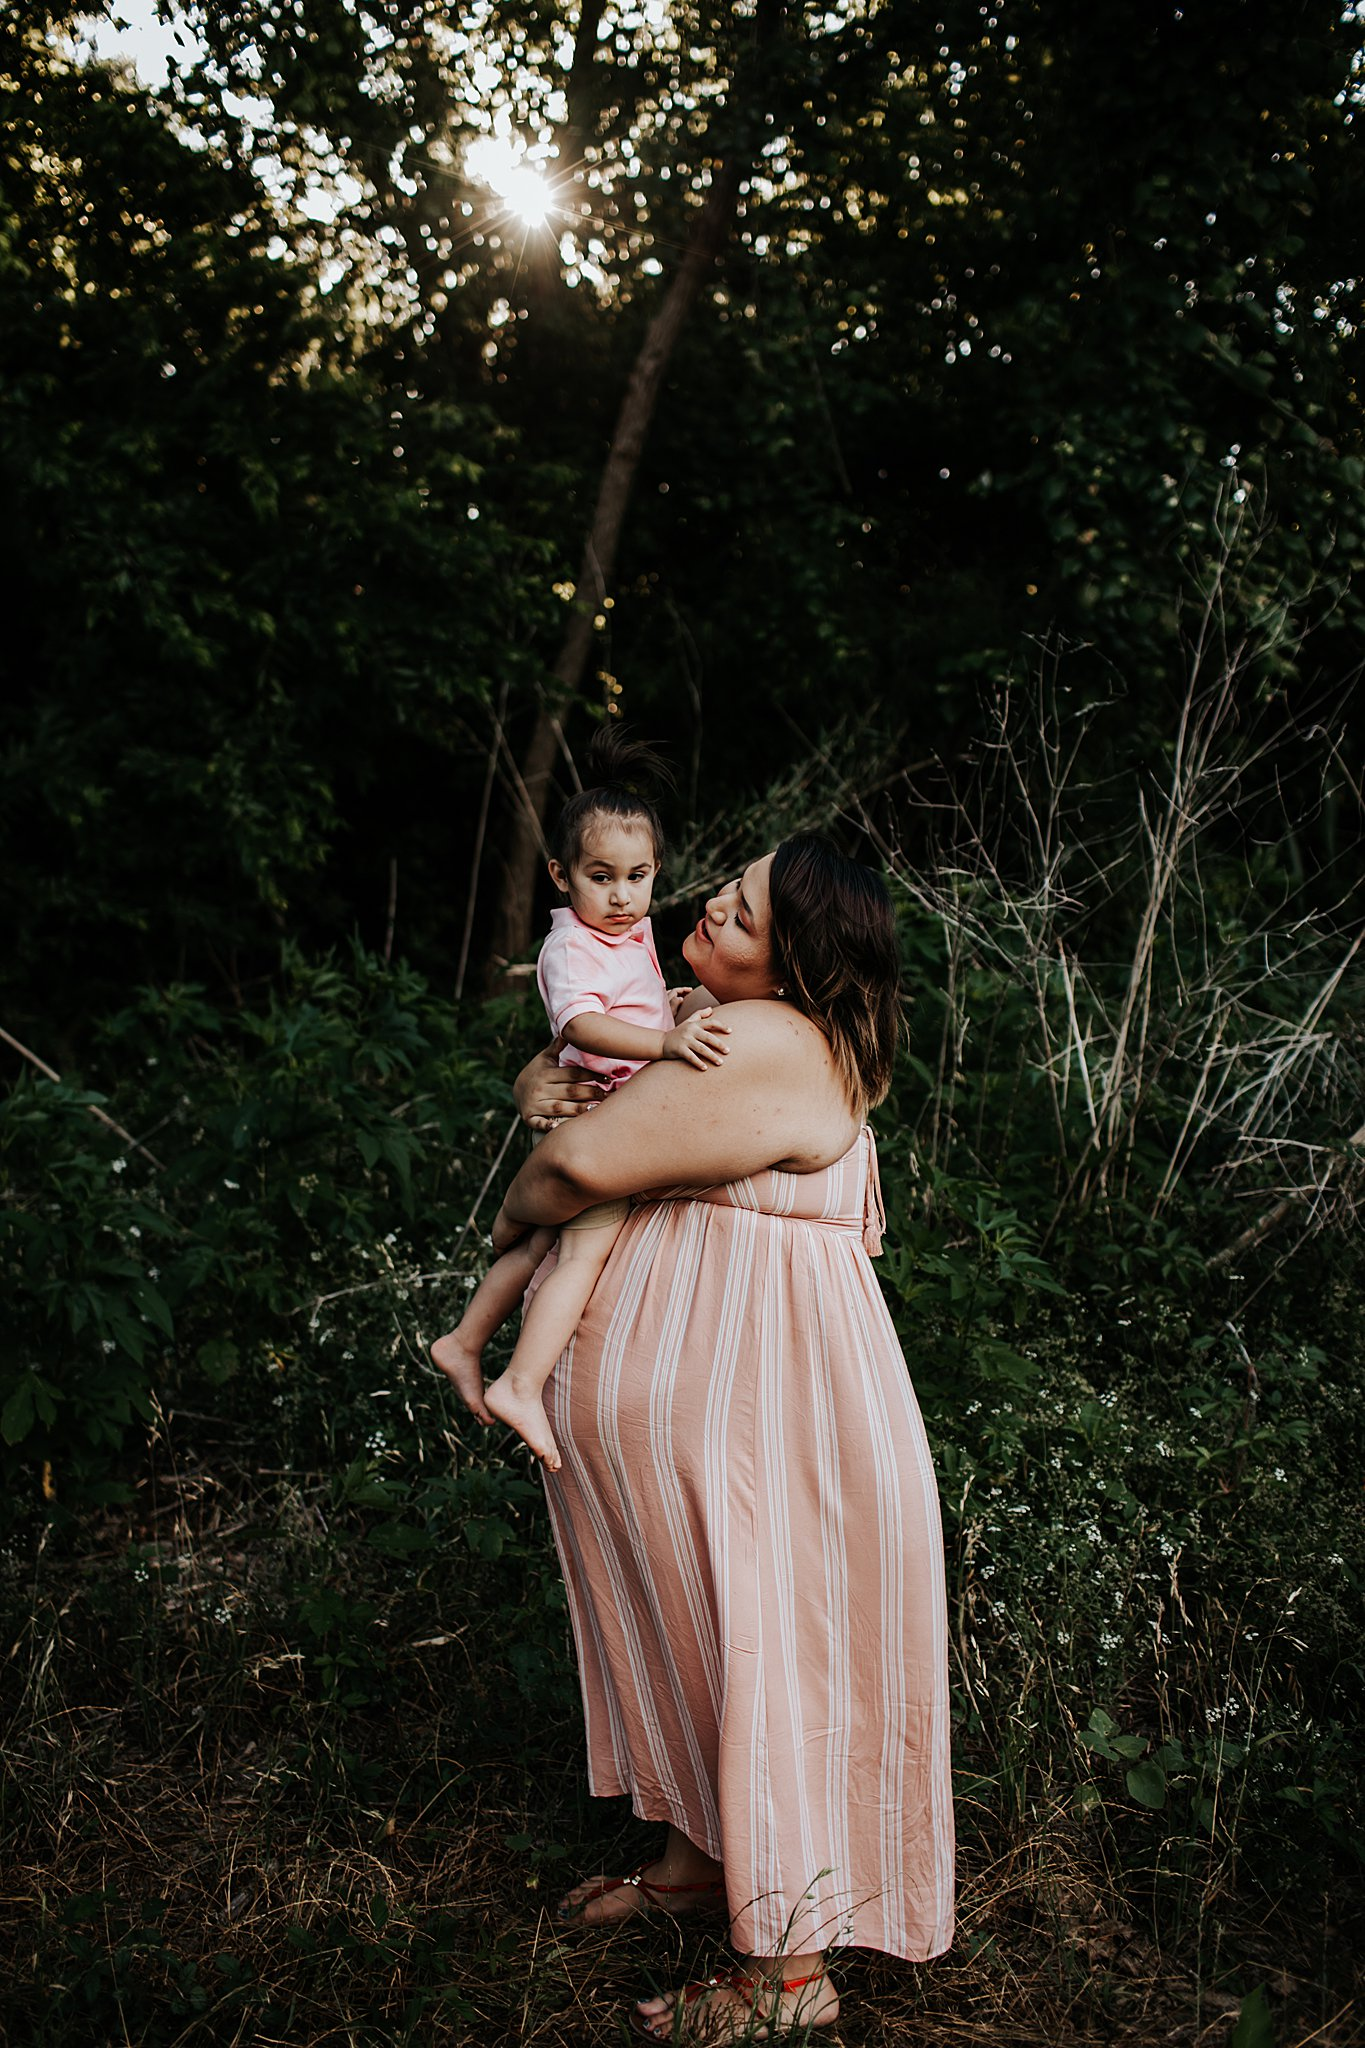 Vanny-San-Antonio-Maternity-Photographer-19_WEB.jpg